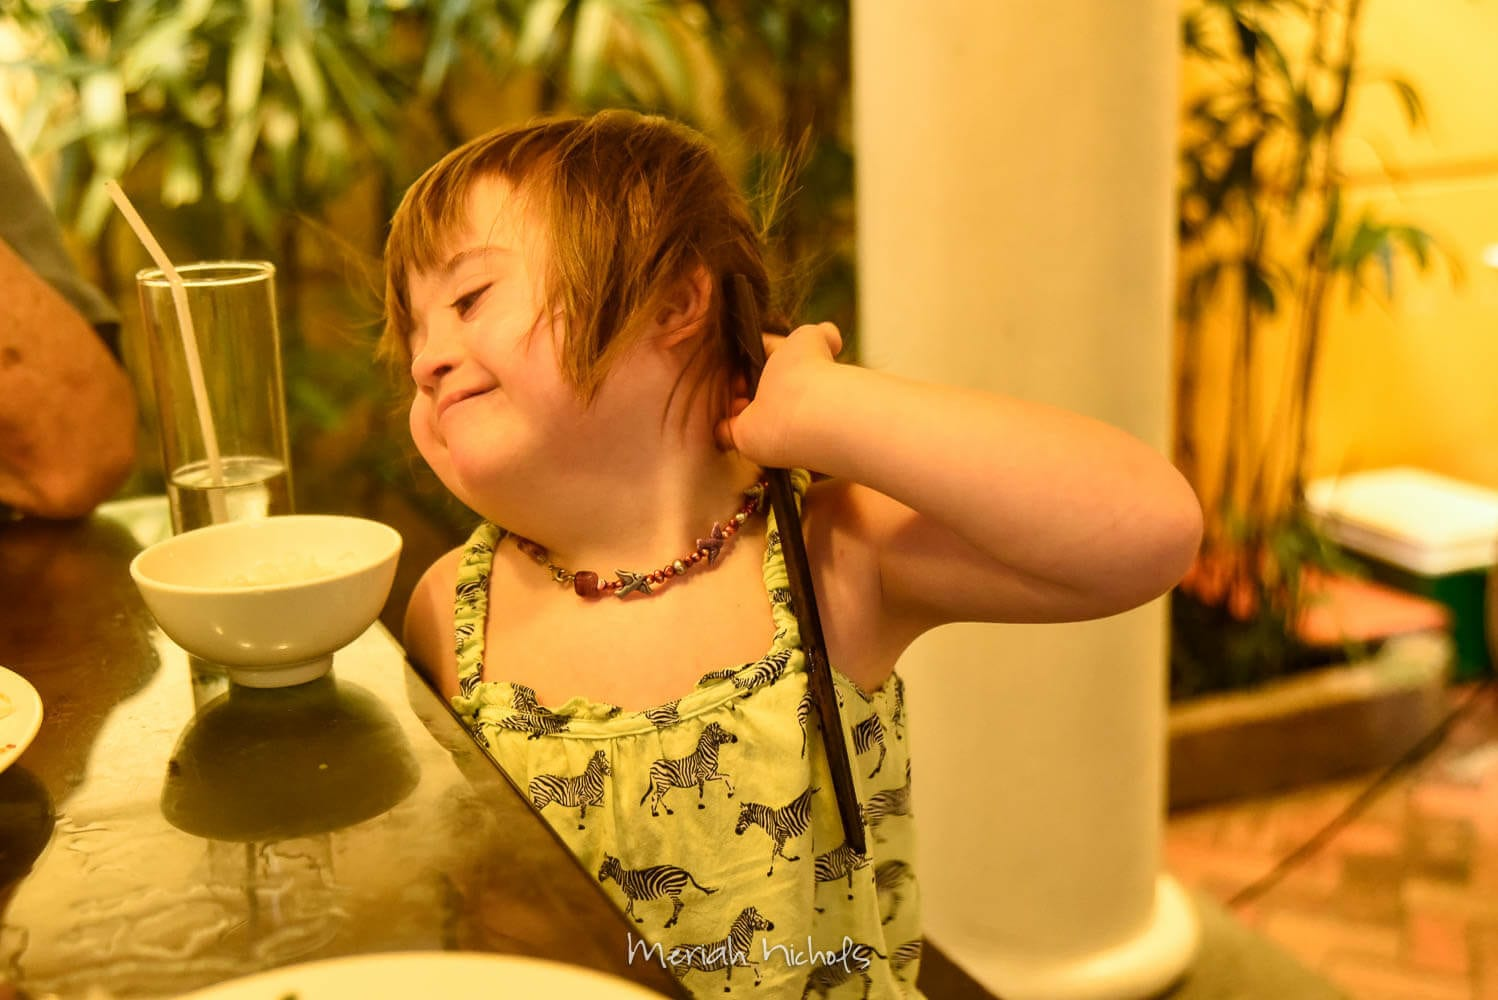 How a typical day unfolds in Penny's life. Penny is a middle-school student and has Down syndrome.